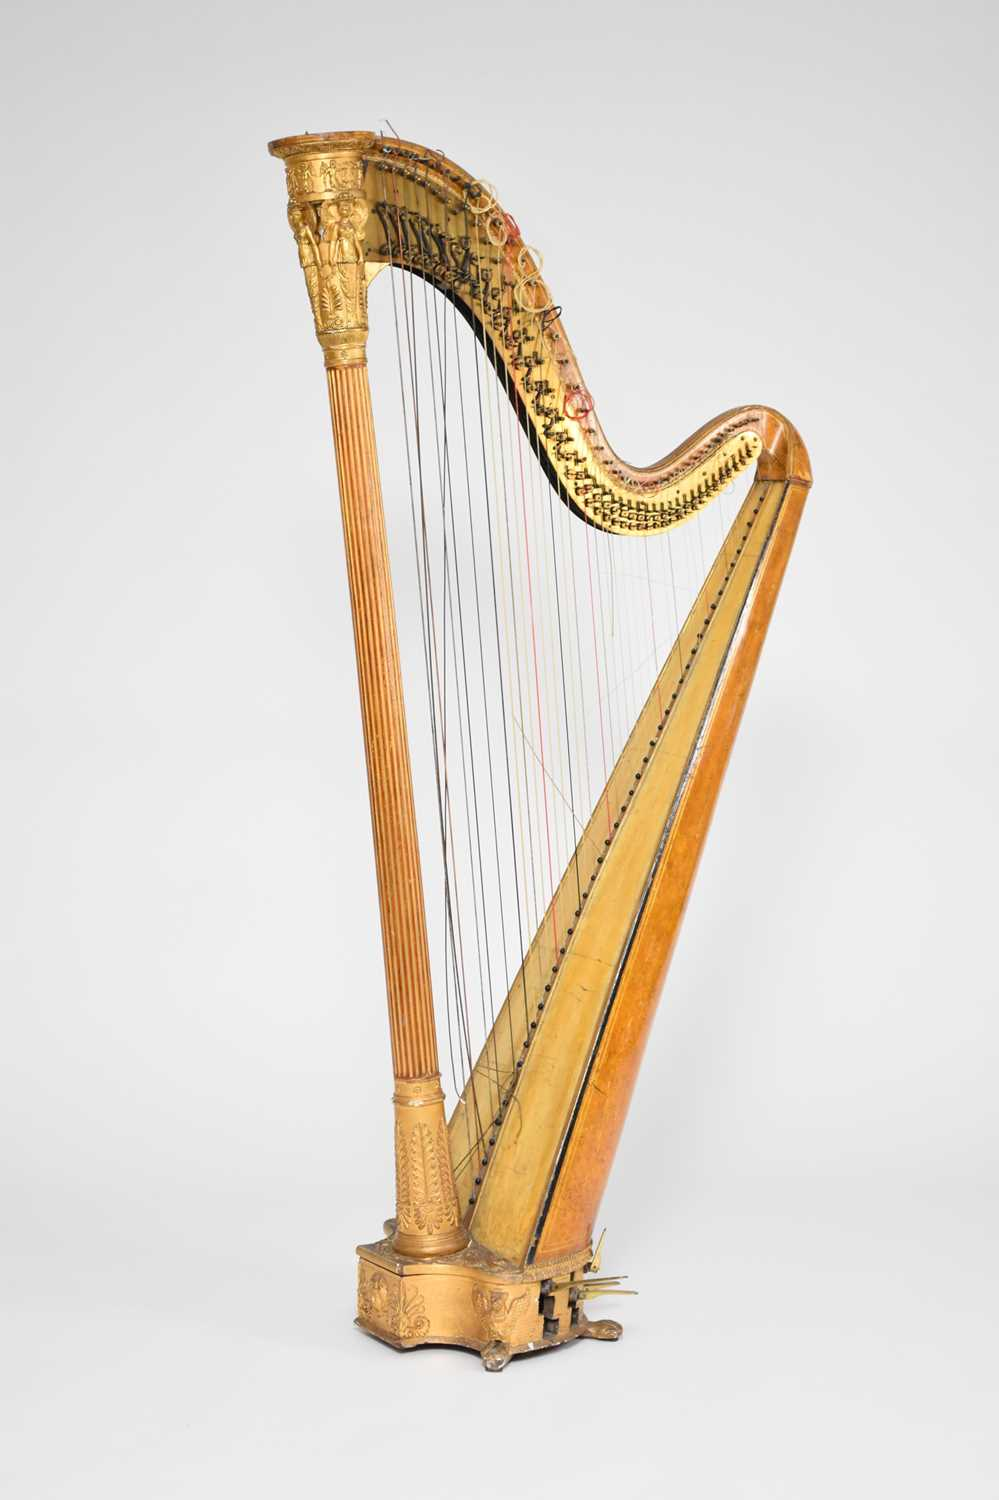 439 - A first half of the 19th century, Neoclassical style, gilt gesso harp by Jacob & James Erat